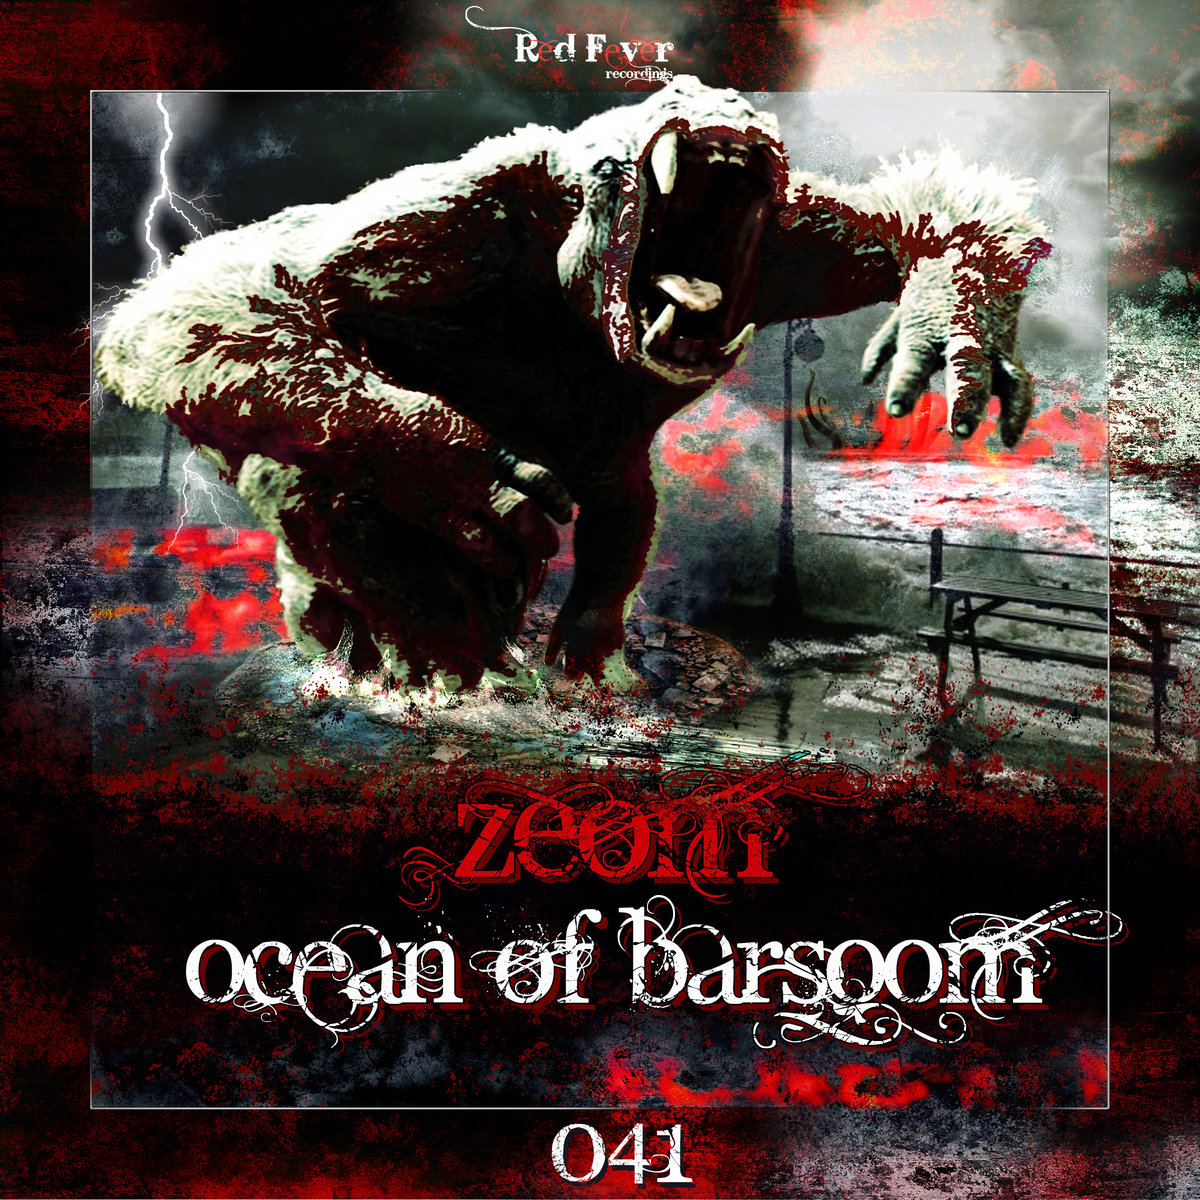 Zeom - Ocean Of Barsoom (artwork)